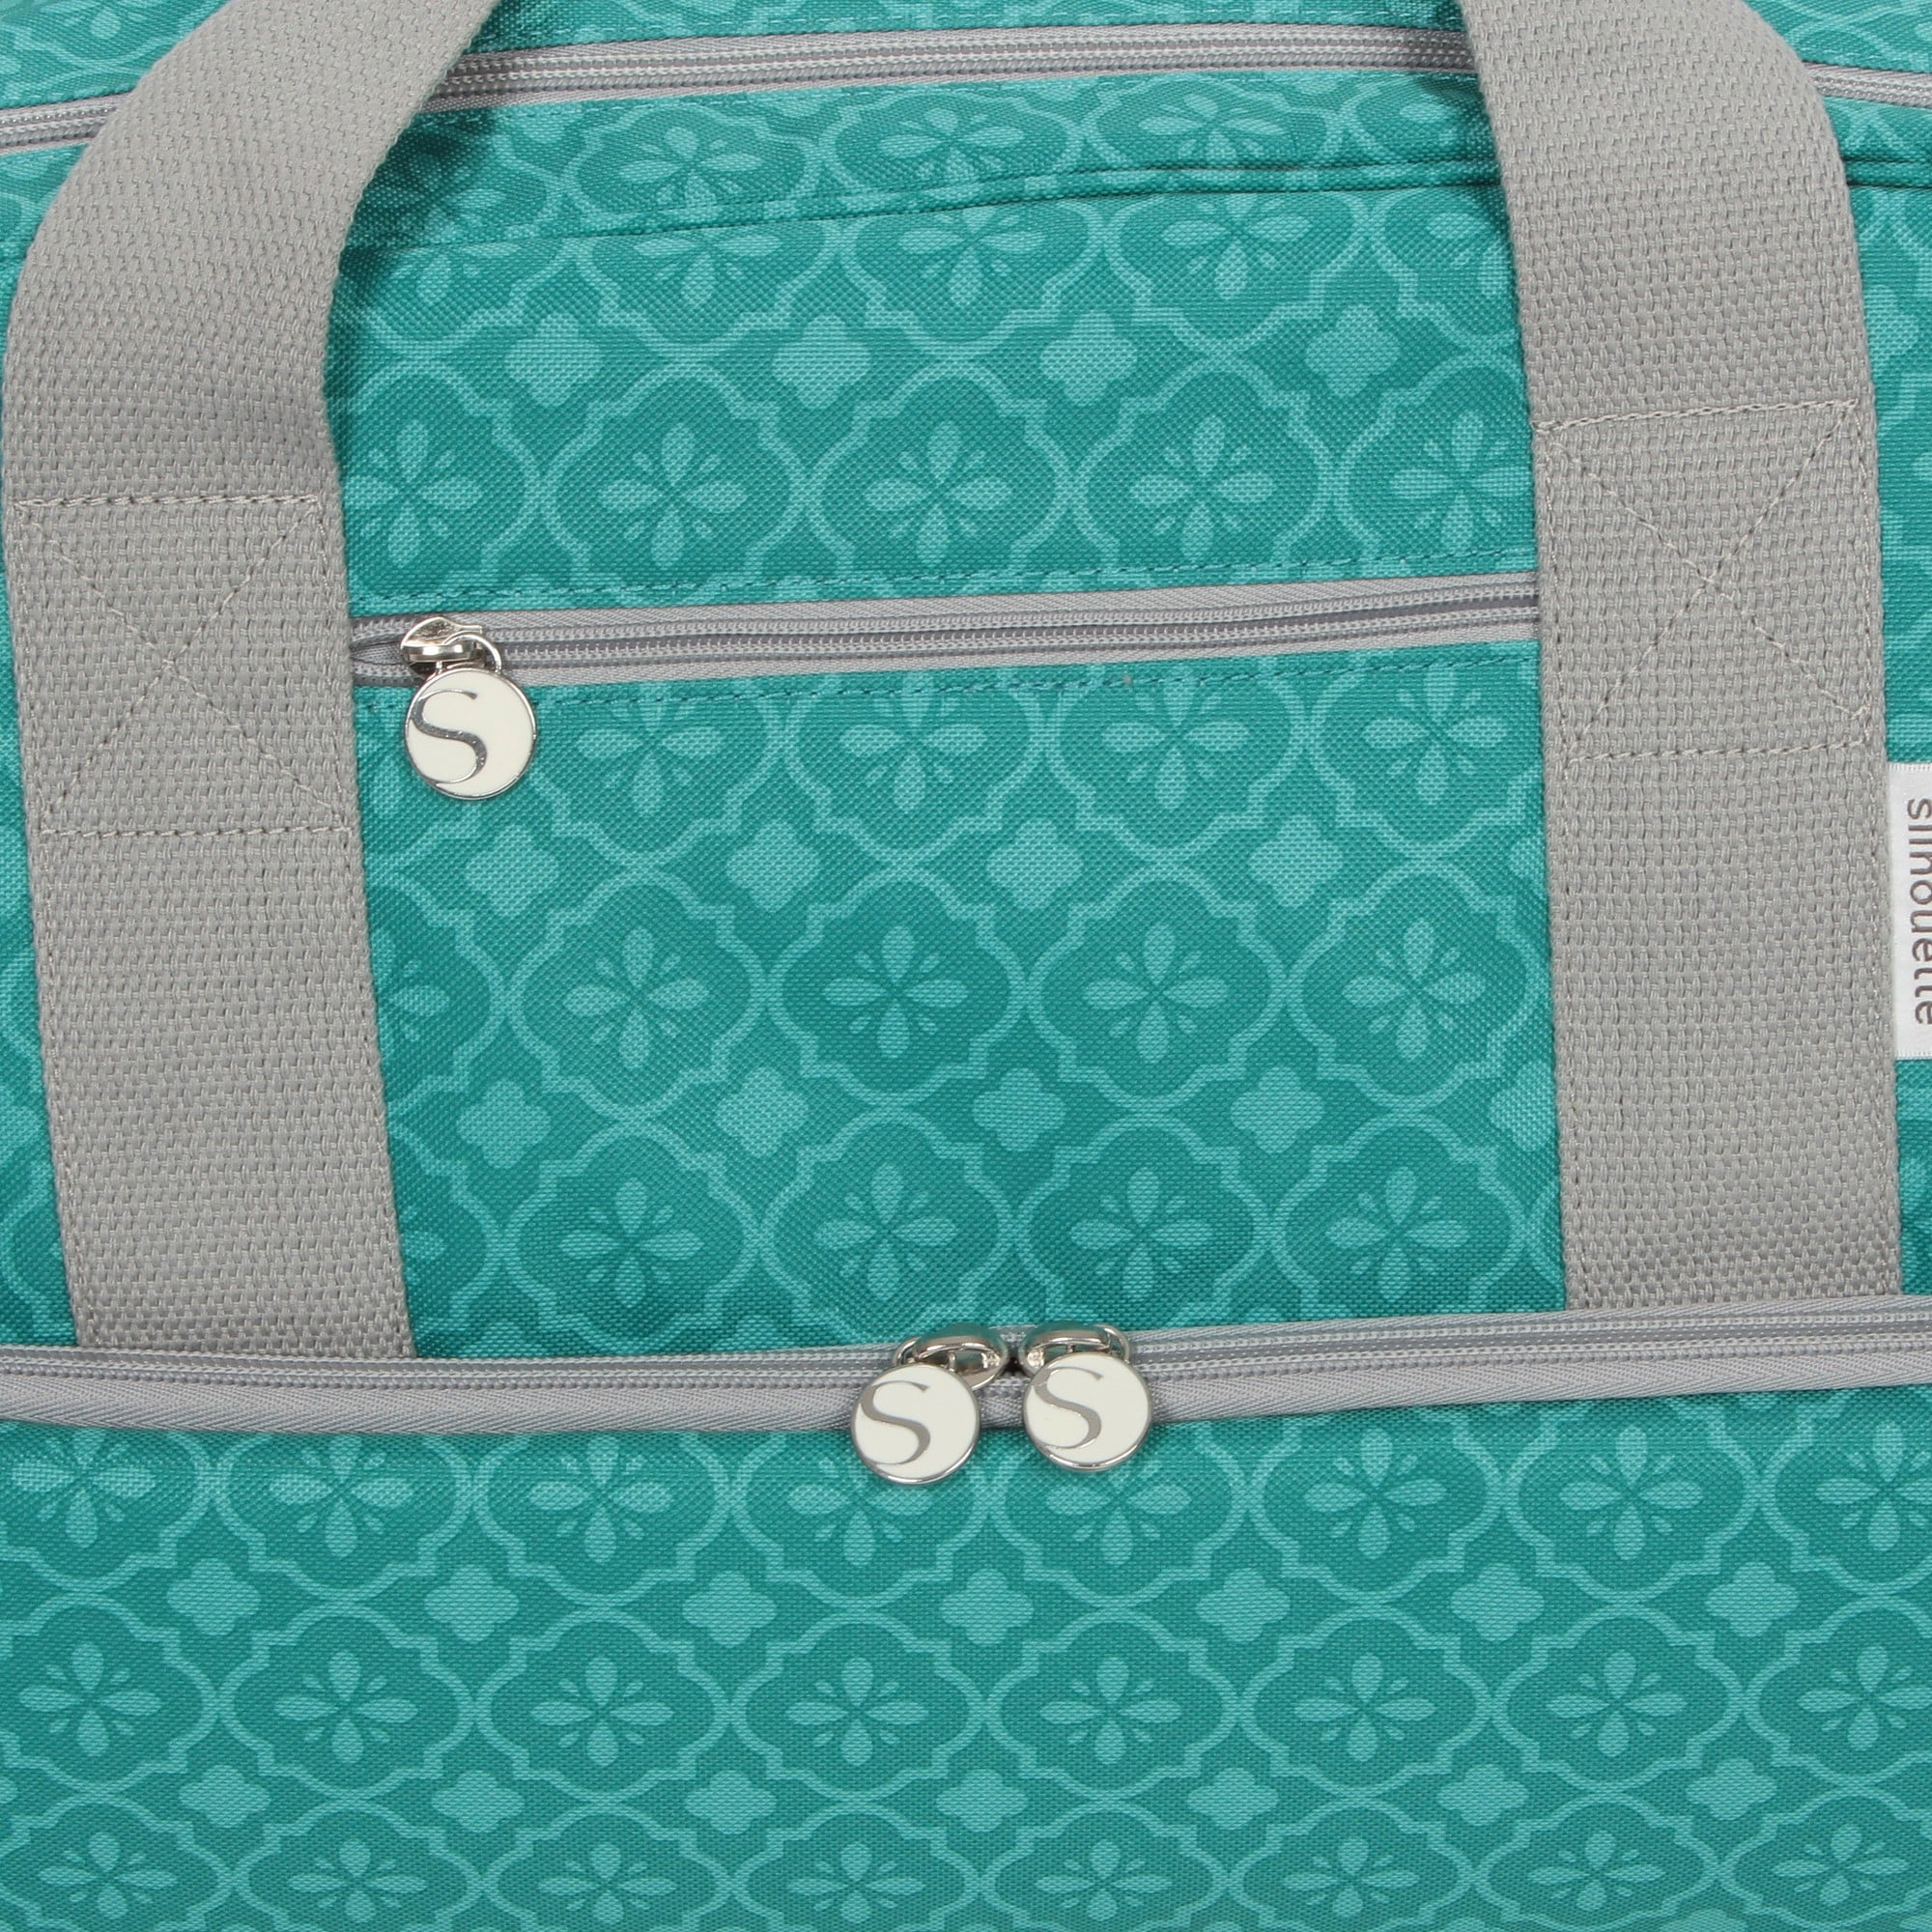 f7c69be179 Shop Silhouette Cameo Rolling Tote Bag - Free Shipping Today - Overstock -  6572376